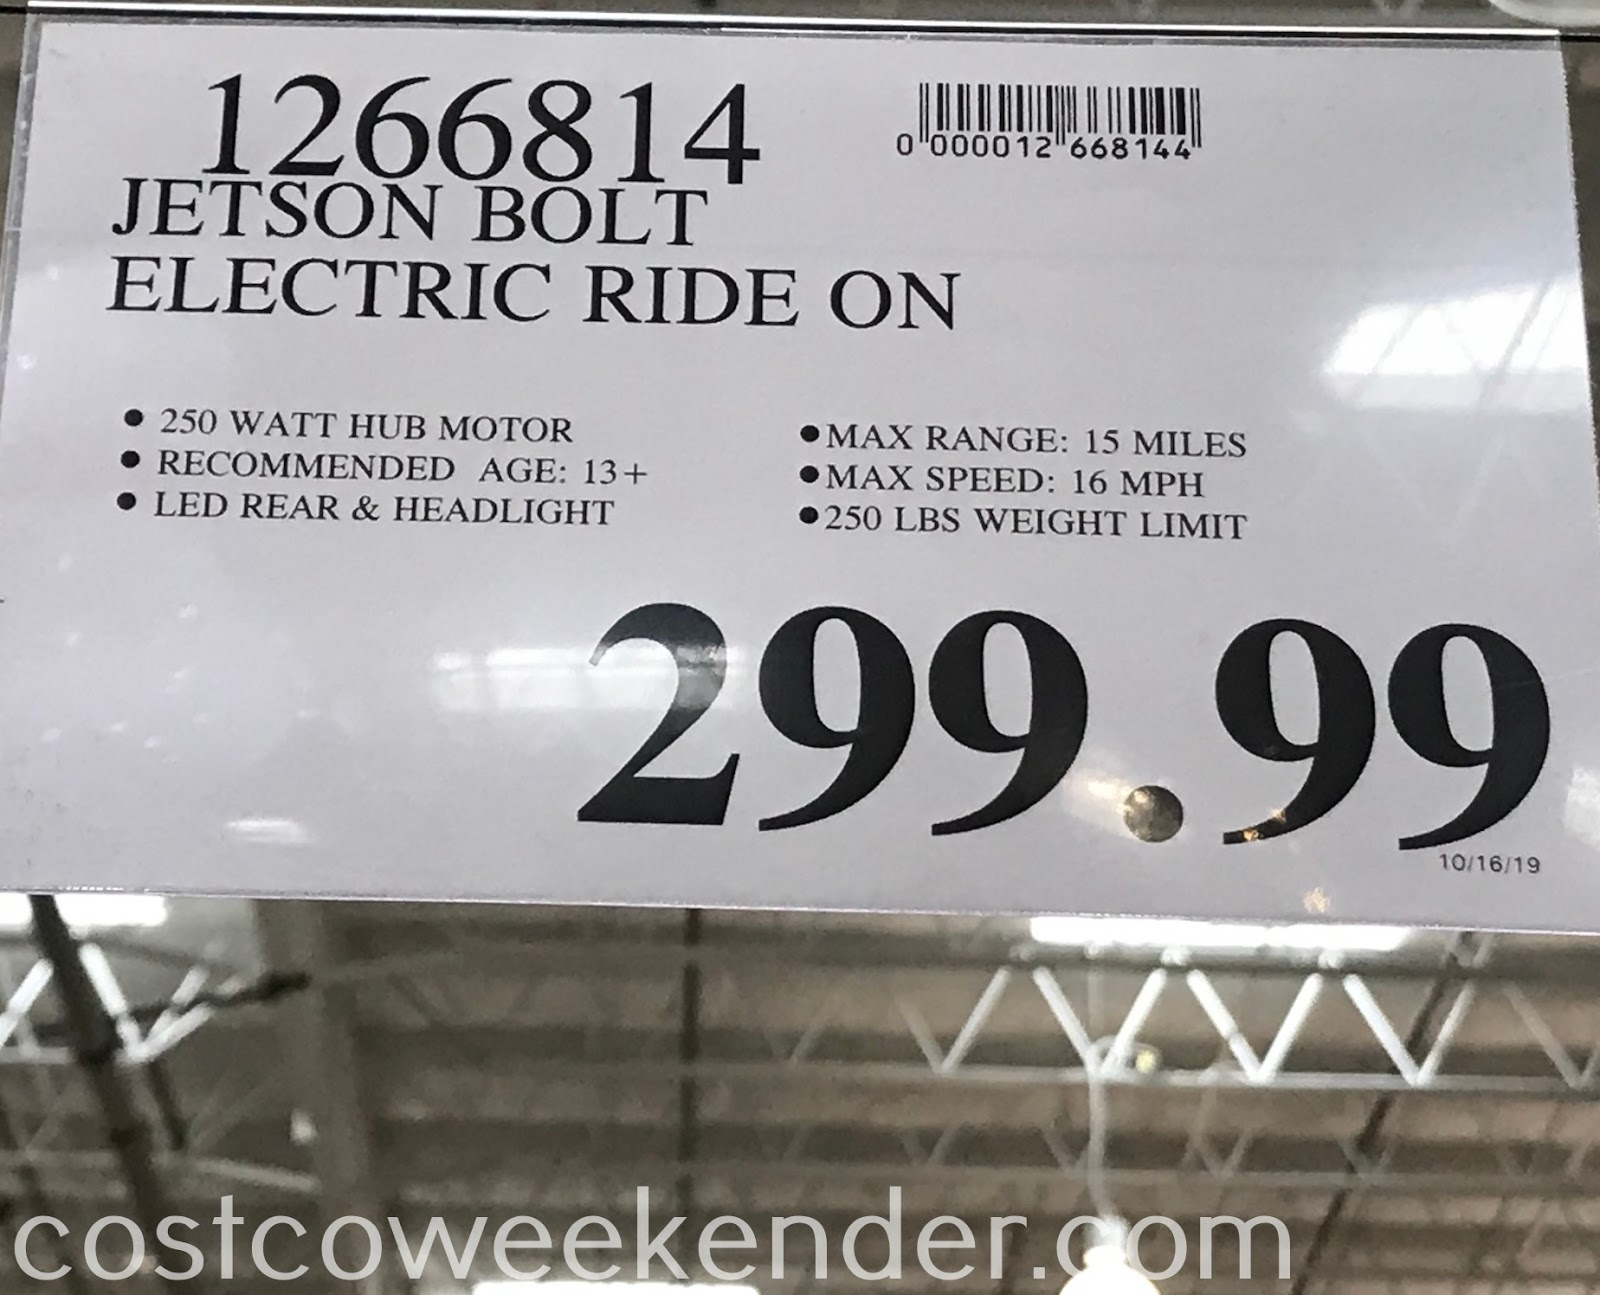 Deal for the Jetson Bolt Folding Electric Ride-On at Costco